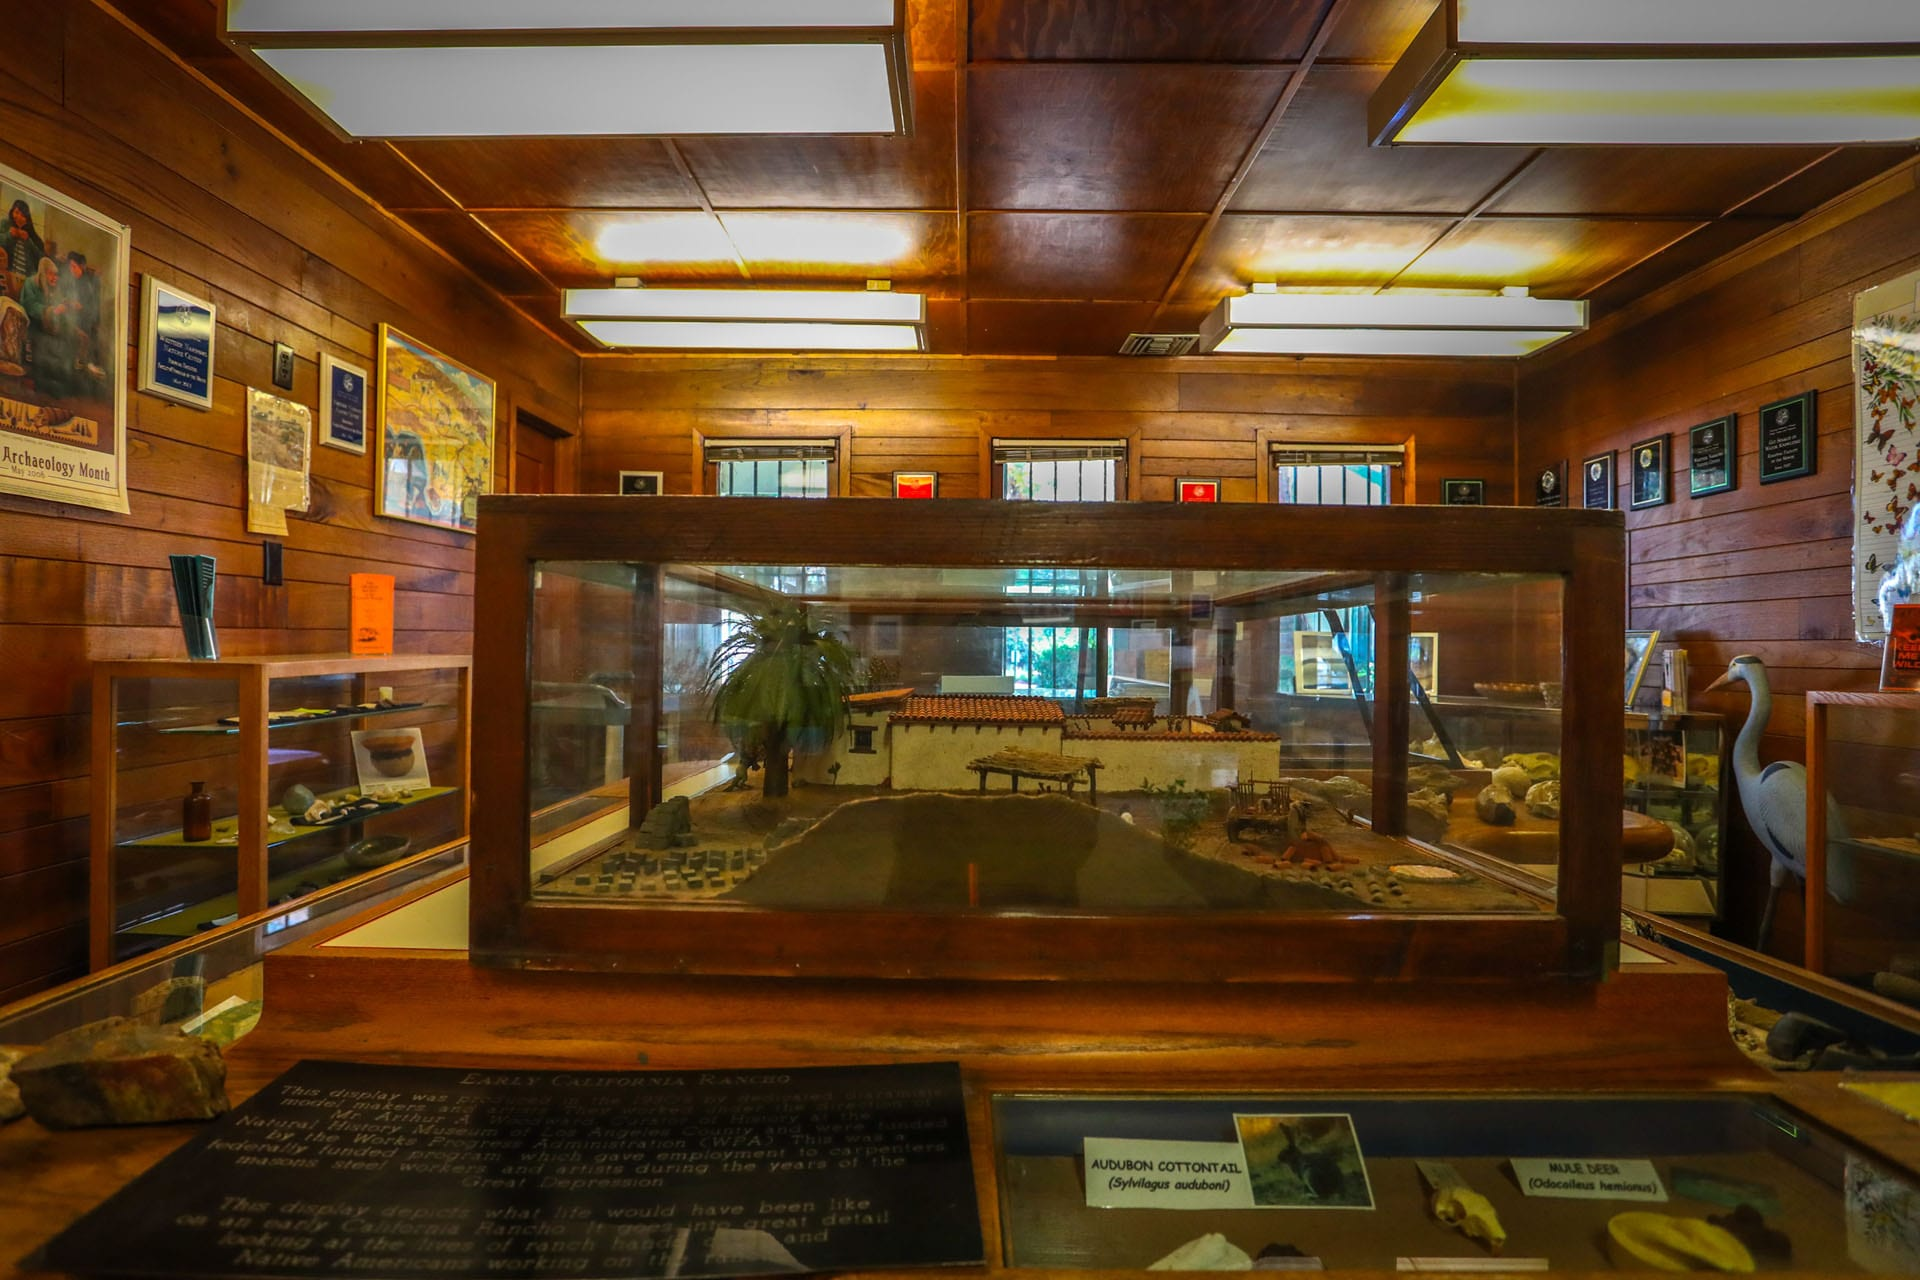 Displays in the nature center museum